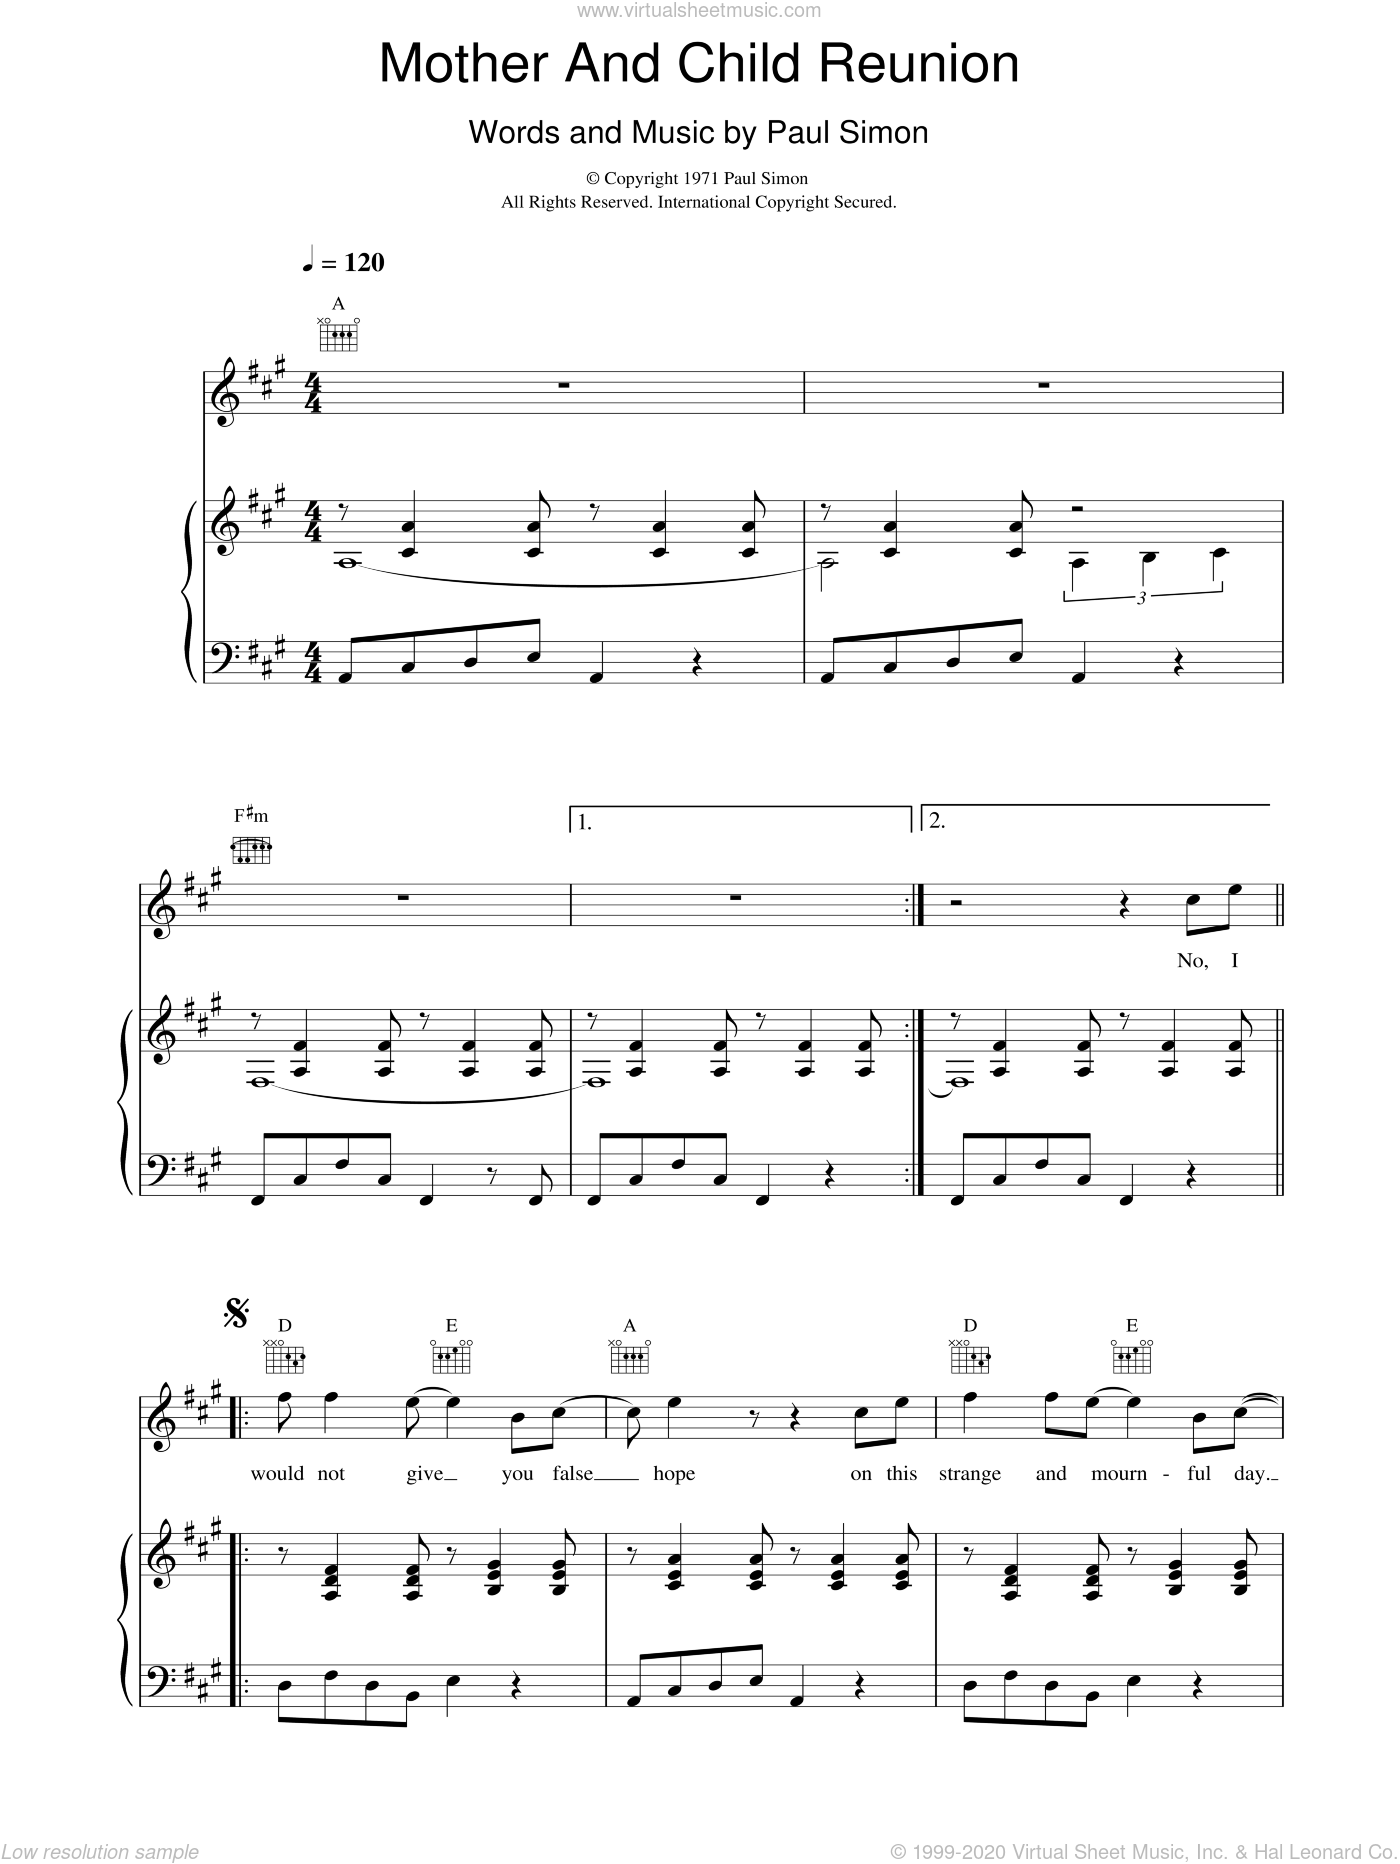 Mother And Child Reunion sheet music for voice, piano or guitar by Paul Simon, intermediate skill level